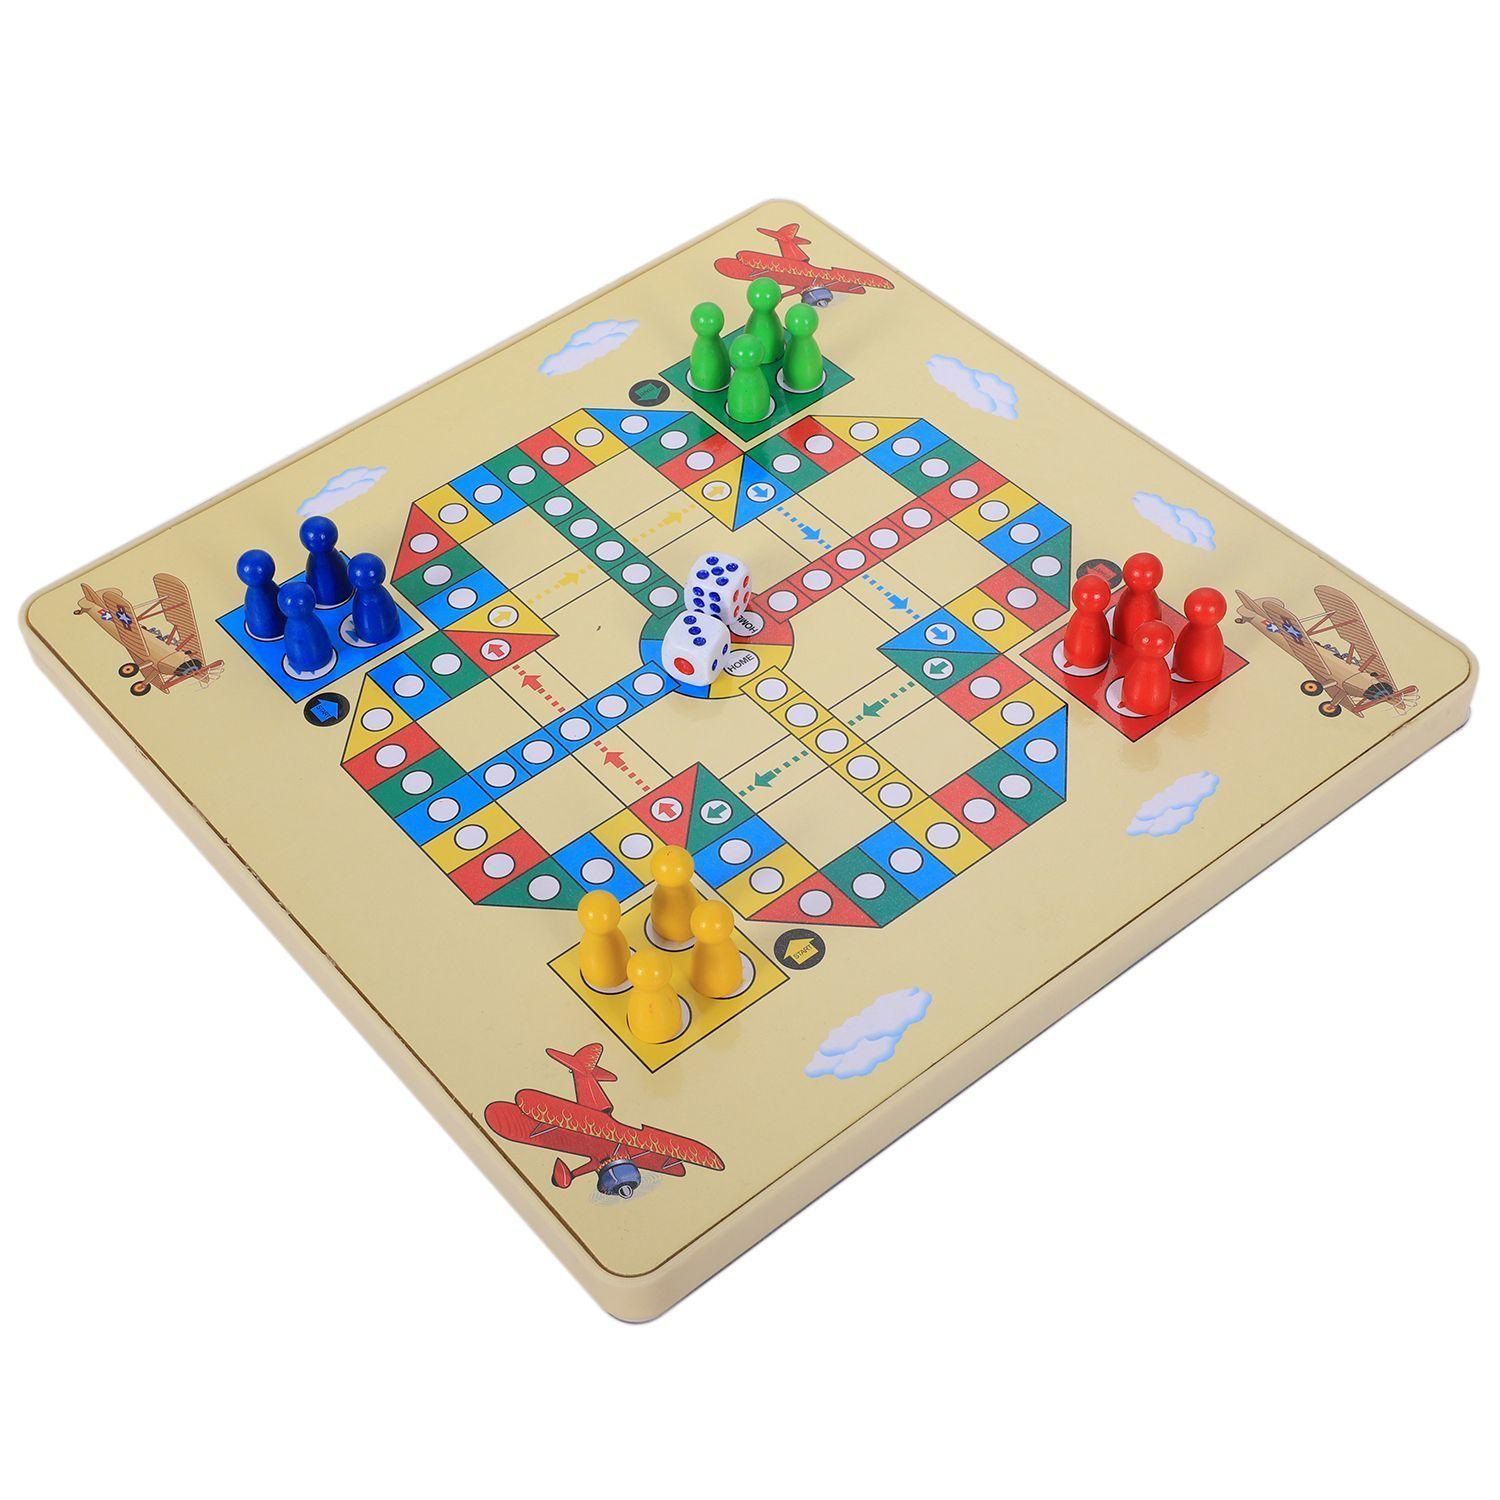 2 In 1 Magnetic Maze With Flying Chess Double-faced Labyrinth Maze Educational Interactive Toys,farm